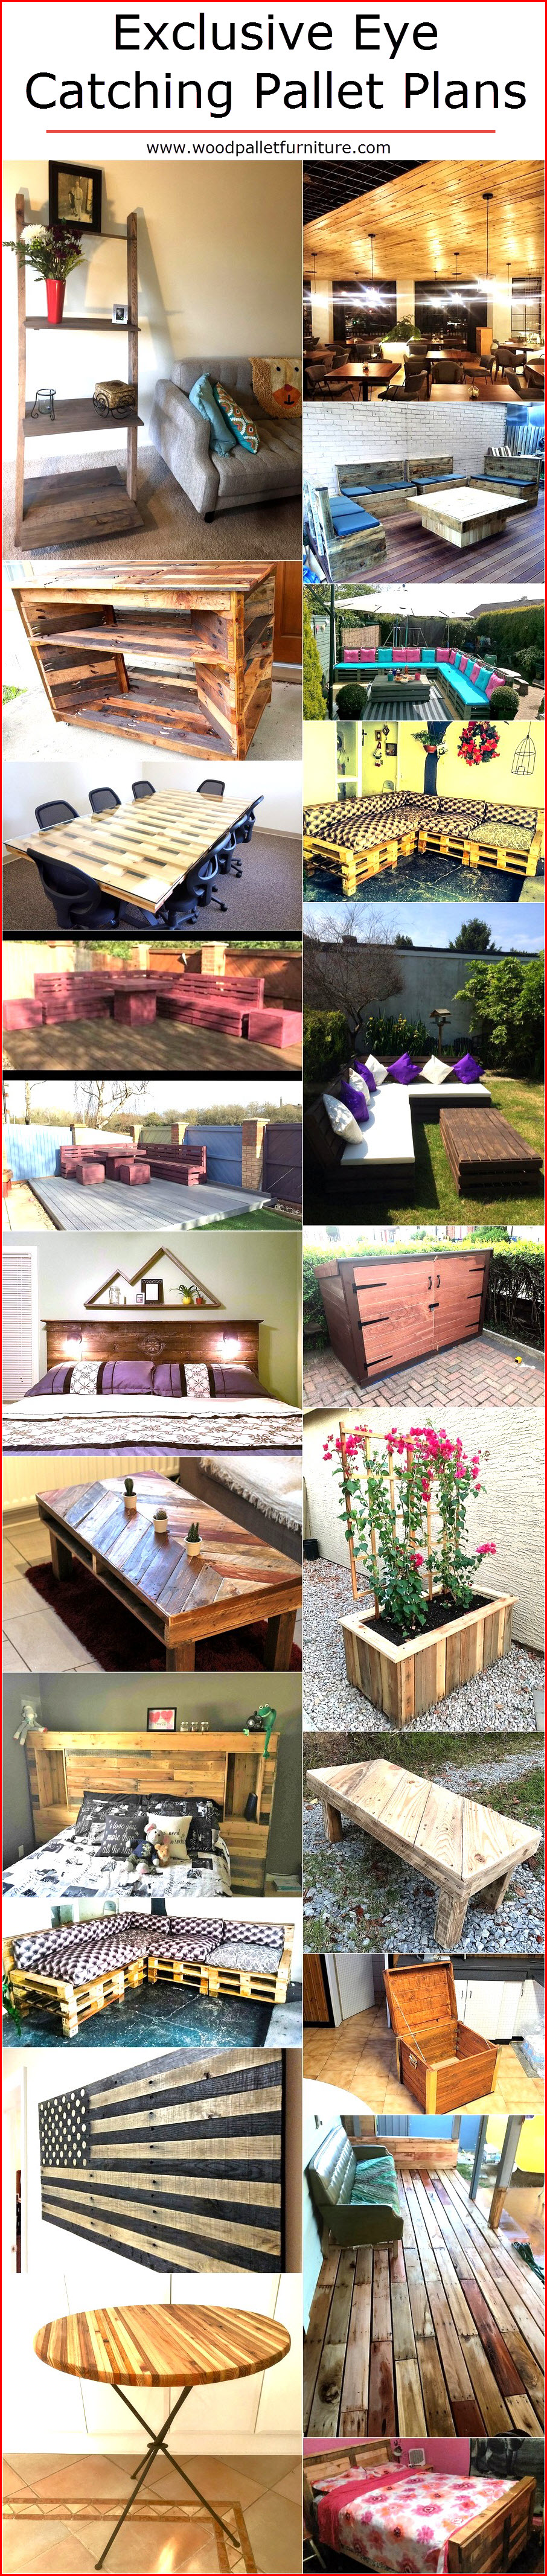 exclusive-eye-catching-pallet-plans